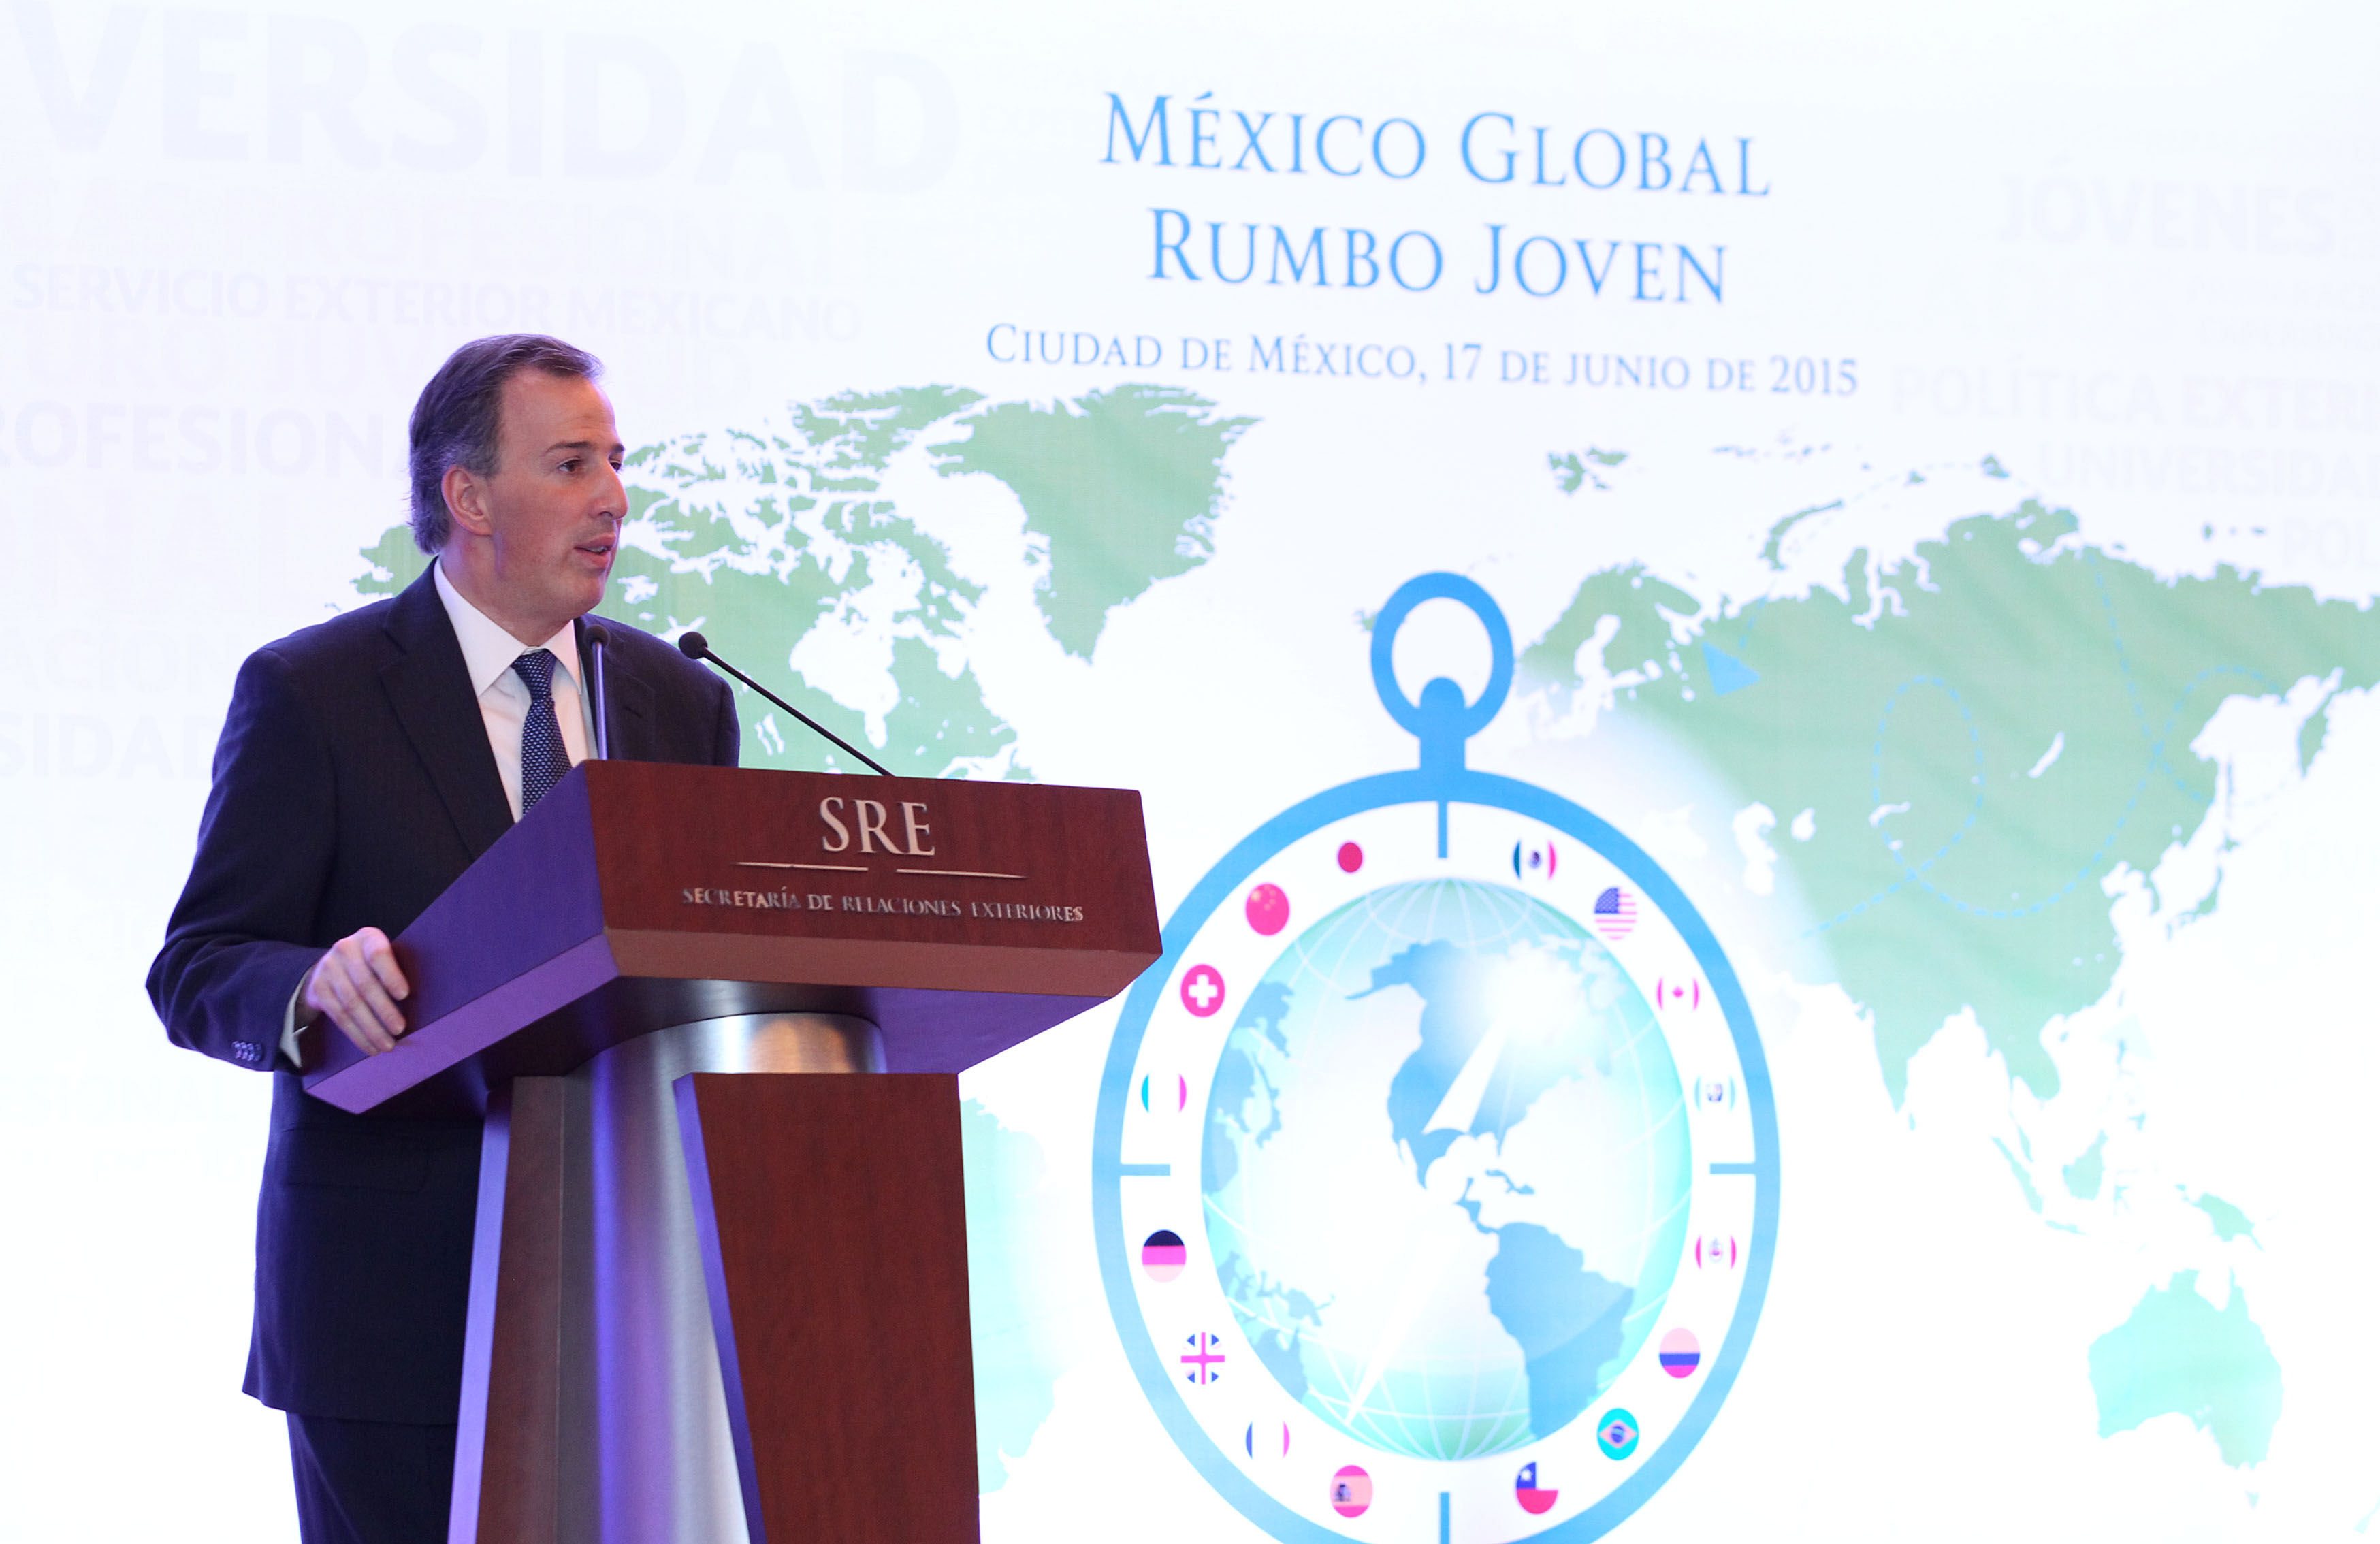 FOTO 1 Canciller Jos  Antonio Meade en el evento M xico Global Rumbo Jovenjpg